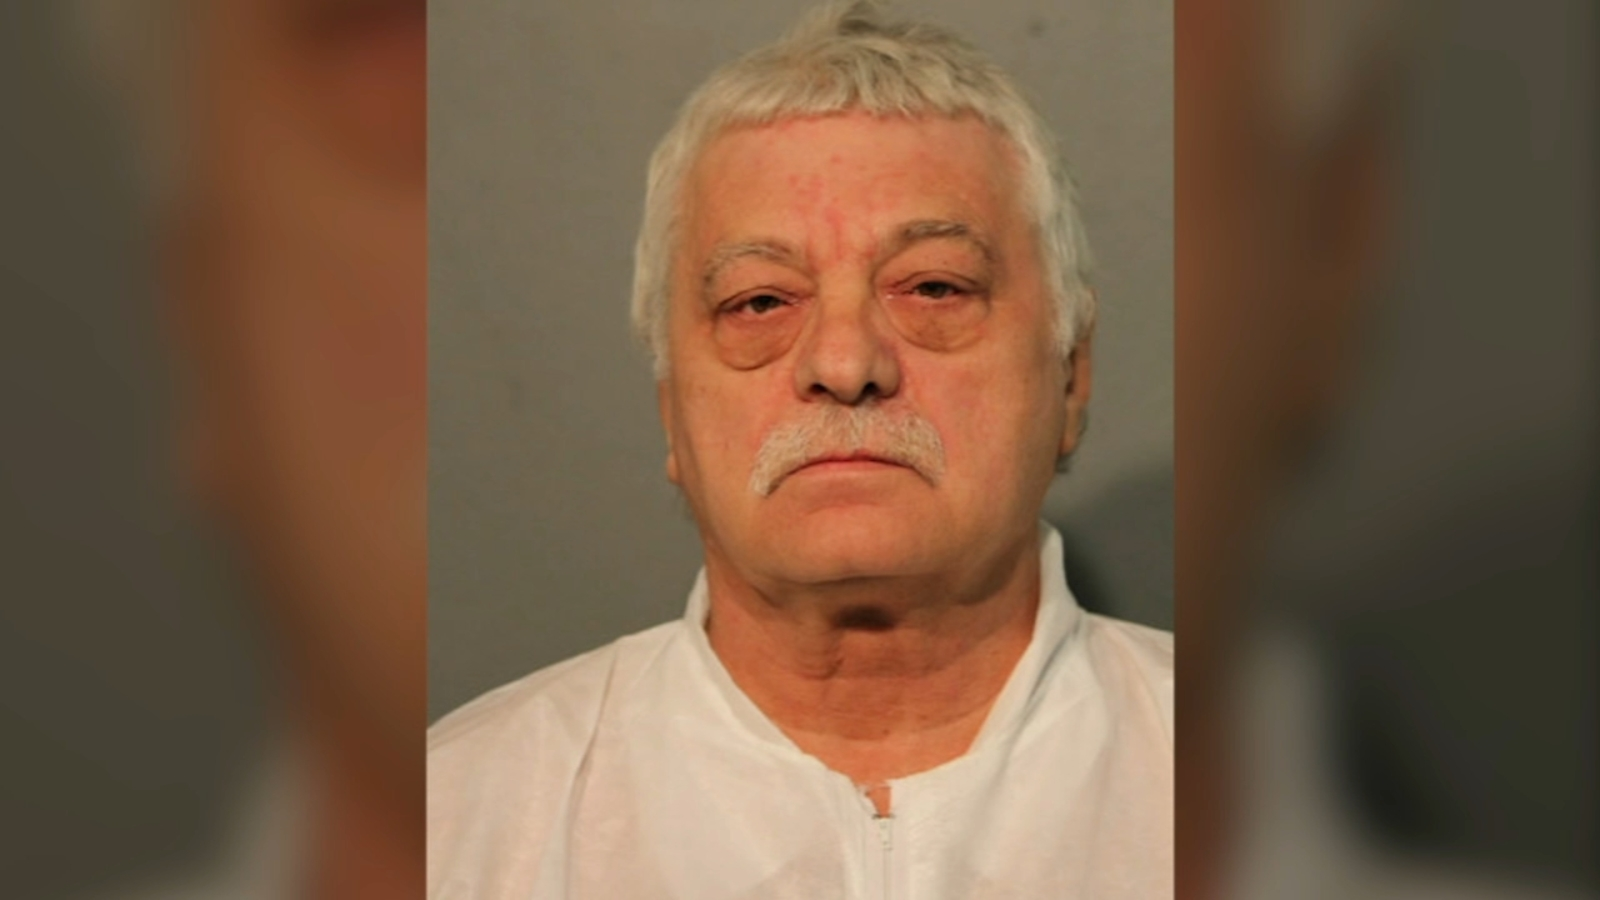 Man charged in fatal shooting of 5 at apartment building on Chicago's Northwest Side